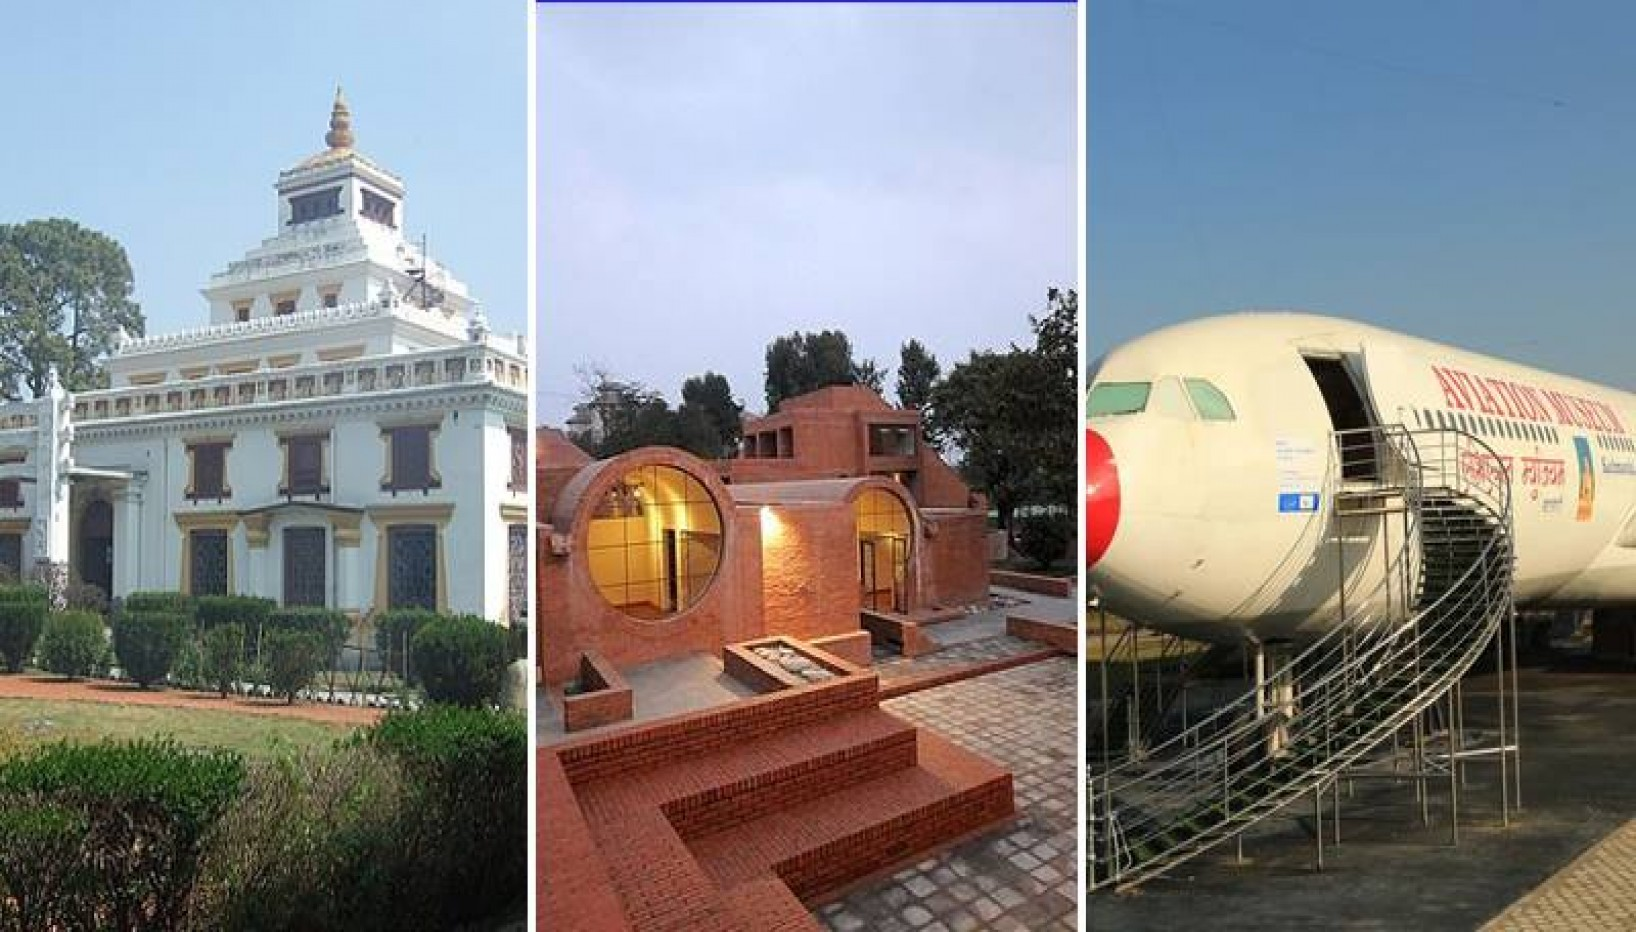 From National History To Architecture, Here Are 10 Museums To Visit In Kathmandu Valley